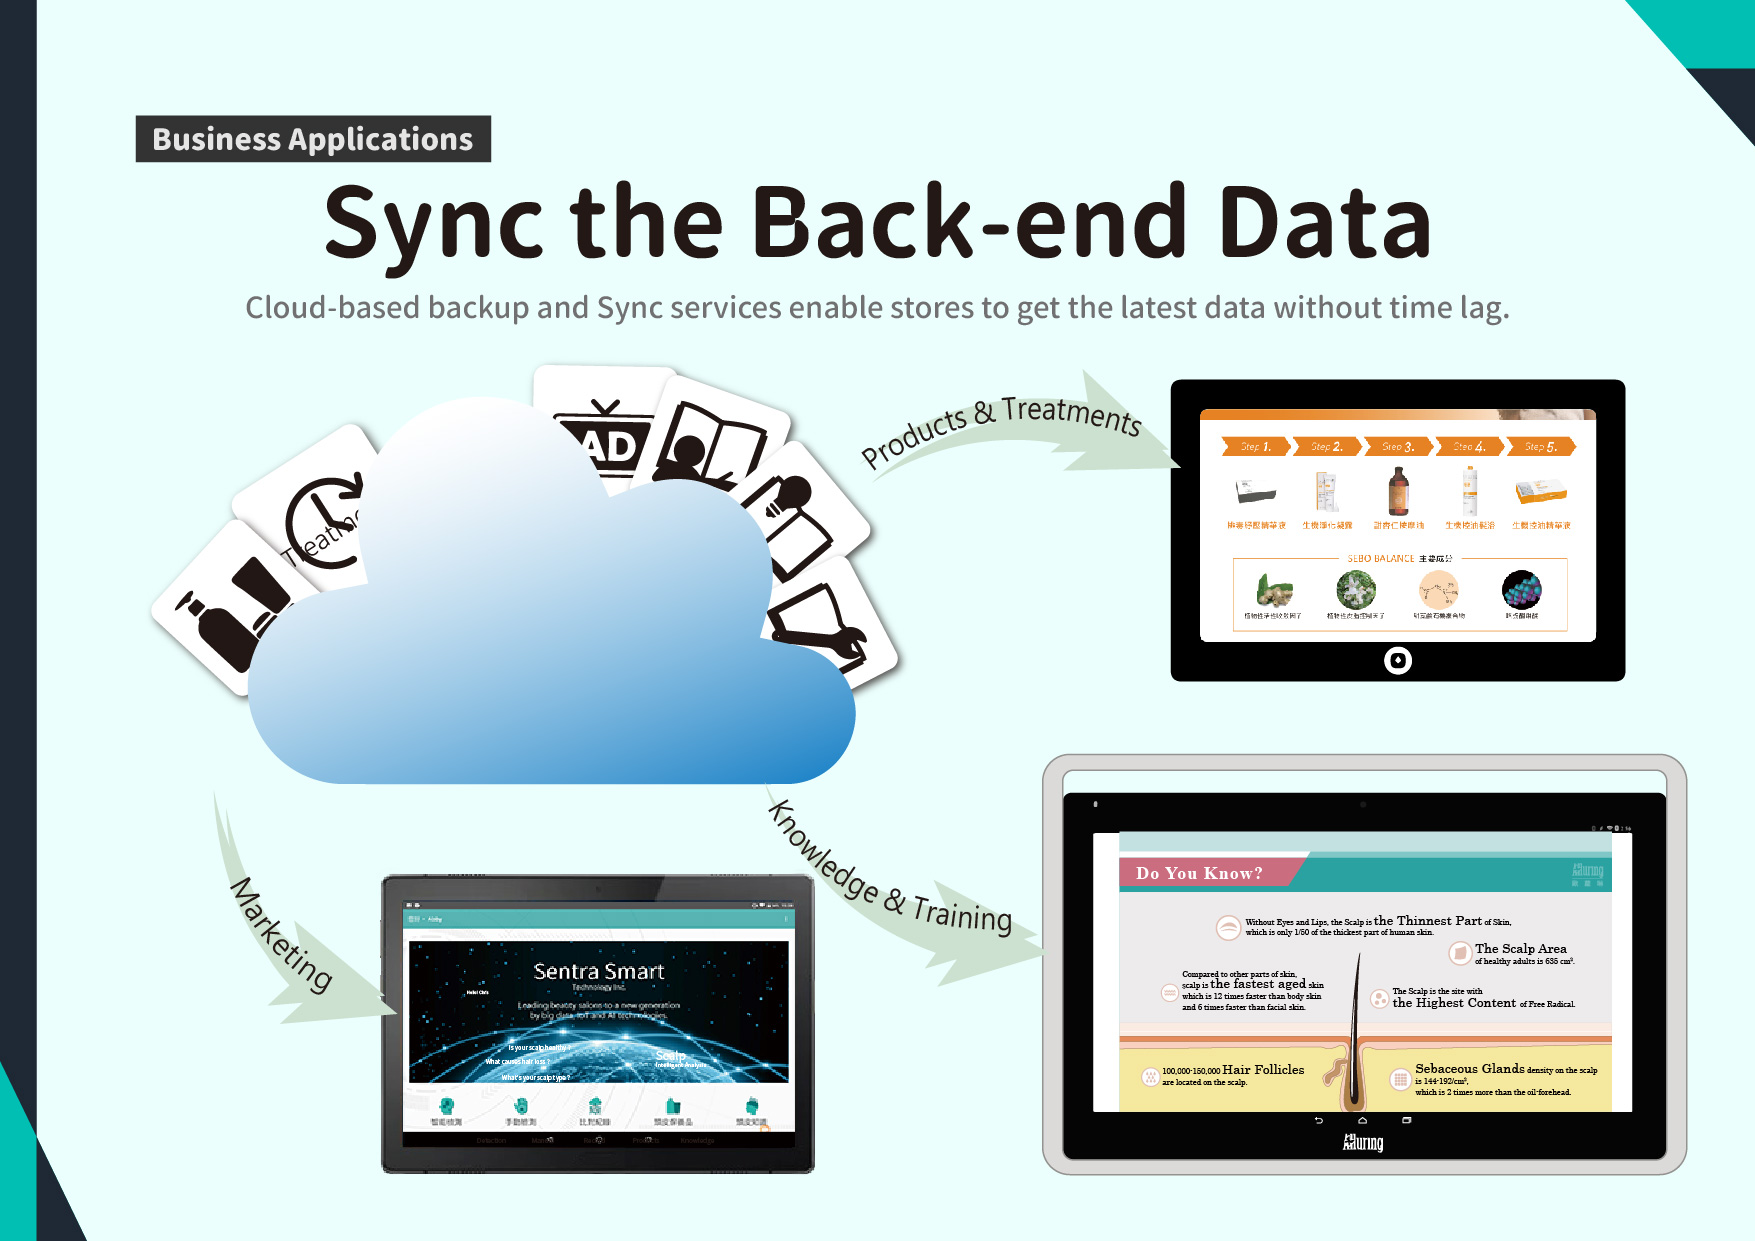 Sync the Back-end Data: Cloud-based backup and Sync services enable stores to get the latest data without time lag.